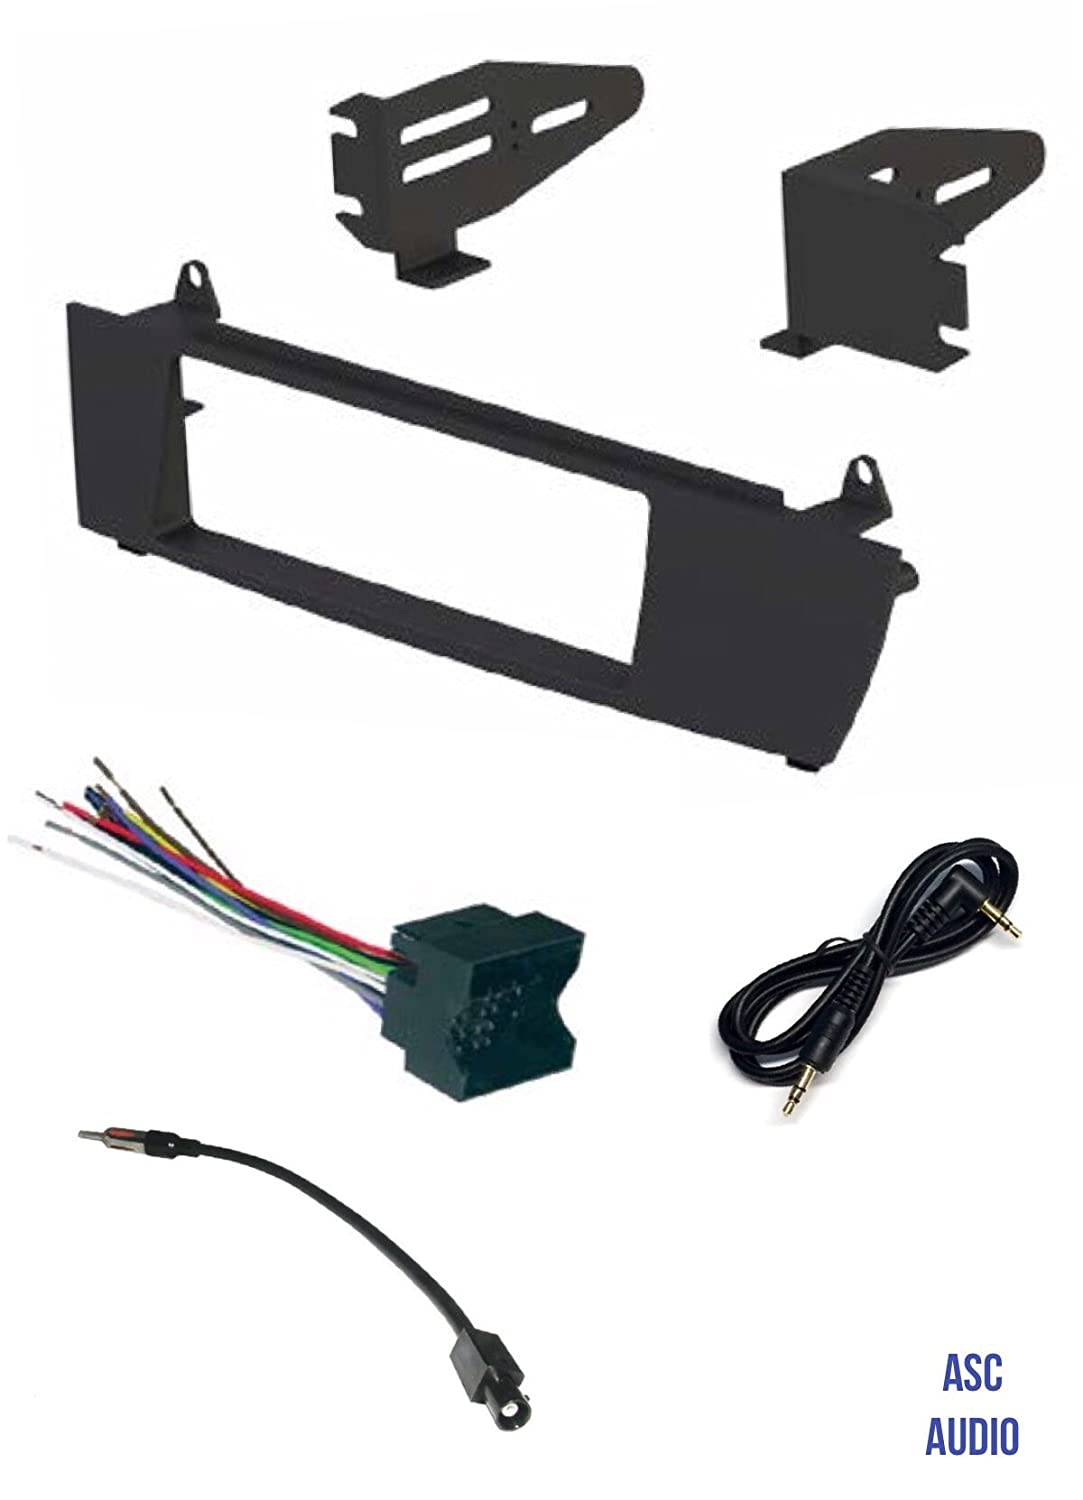 ... Dash Kit, Wire Harness, and Antenna Adapter to Install and Aftermarket  Single Din Radio for 2004 2005 2006 2007 2008 2009 2010 BMW X3: Car  Electronics